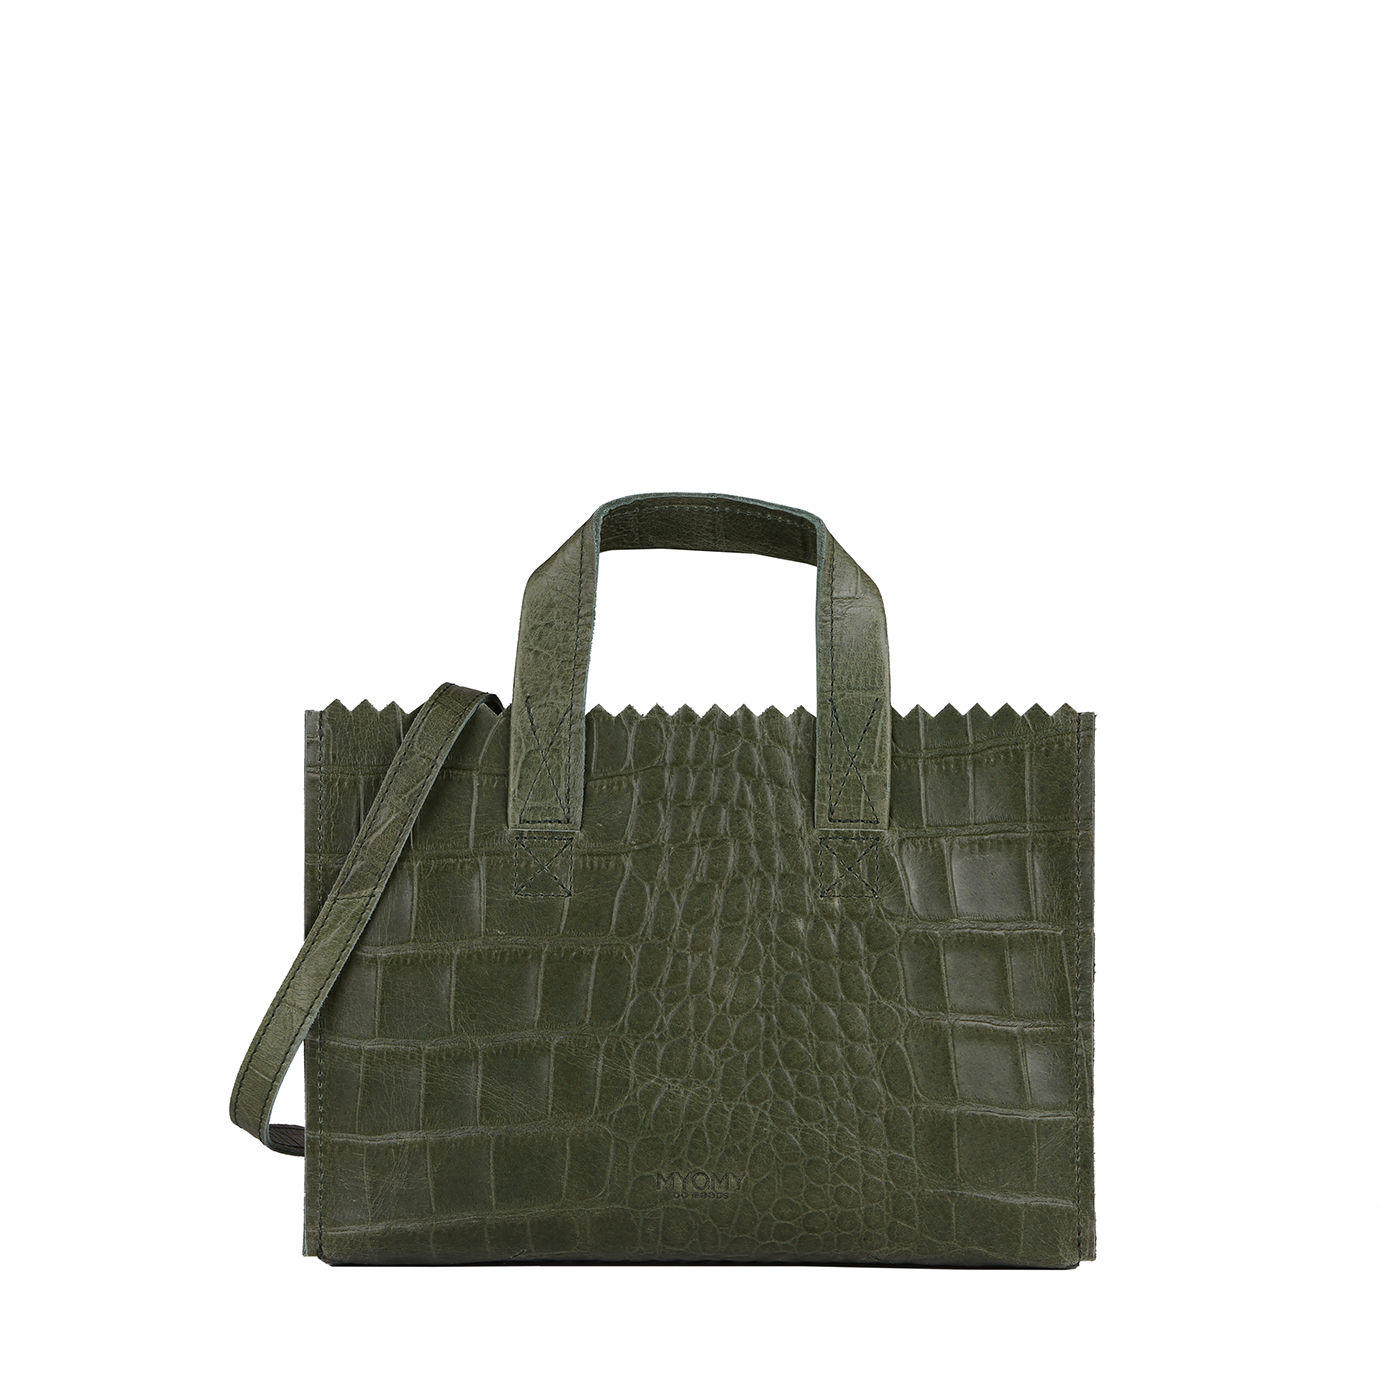 MY PAPER BAG Mini handbag cross-body  - croco vetiver green